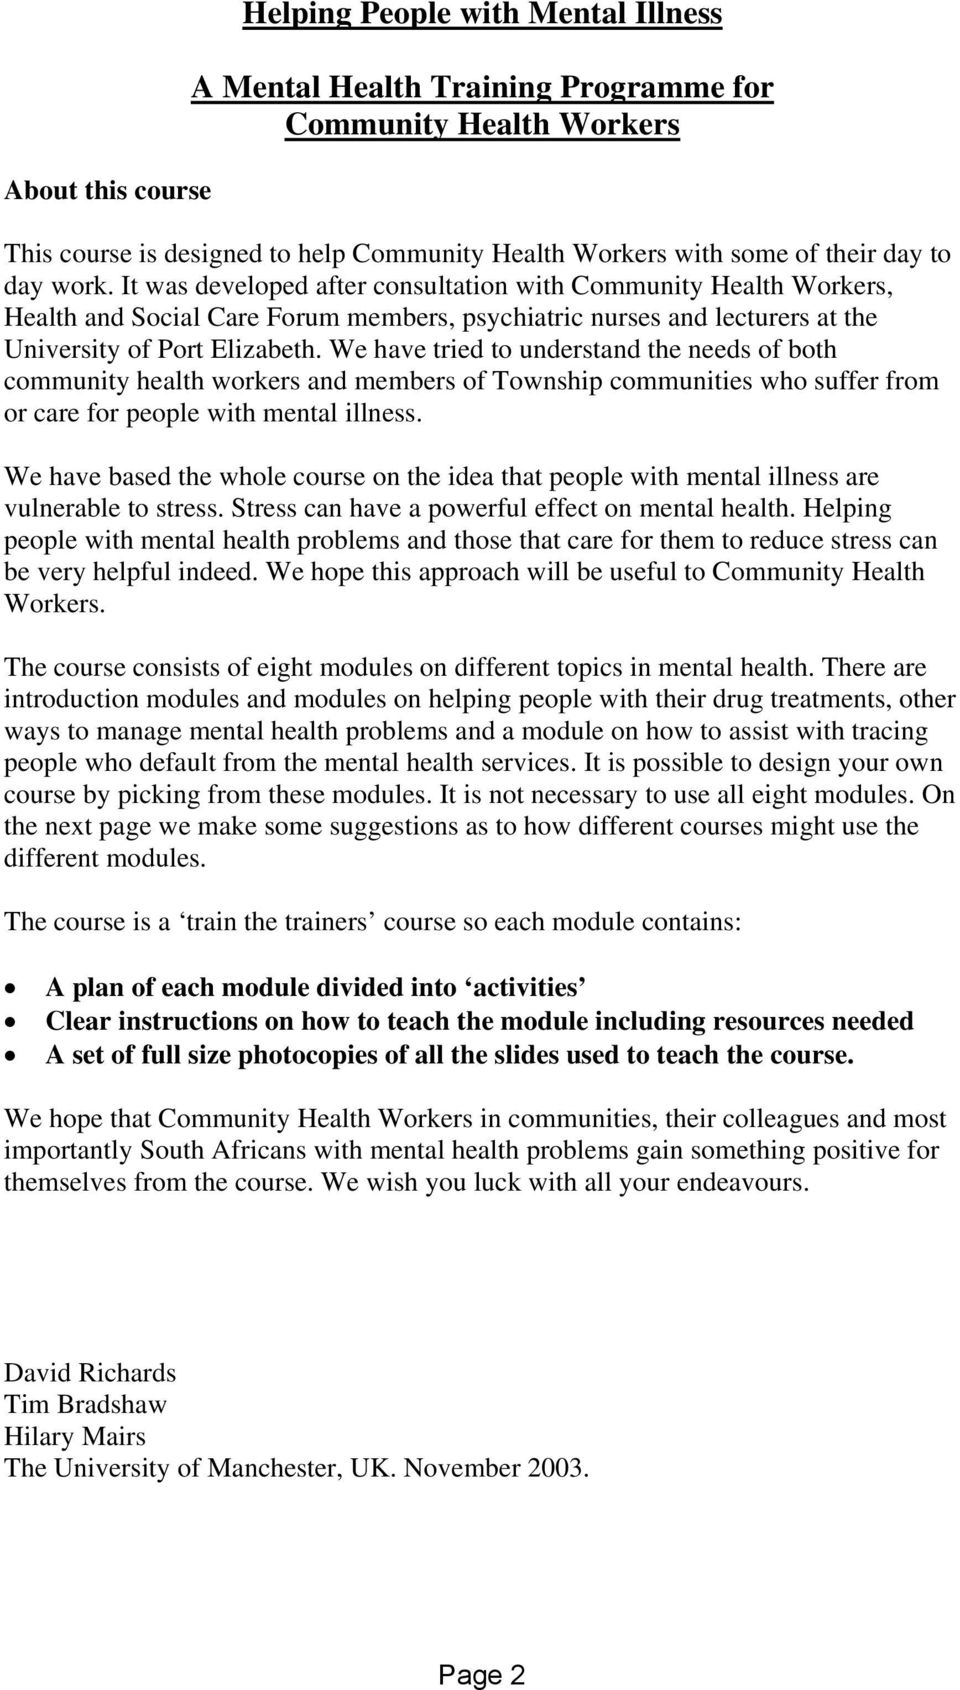 We have tried to understand the needs of both community health workers and members of Township communities who suffer from or care for people with mental illness.